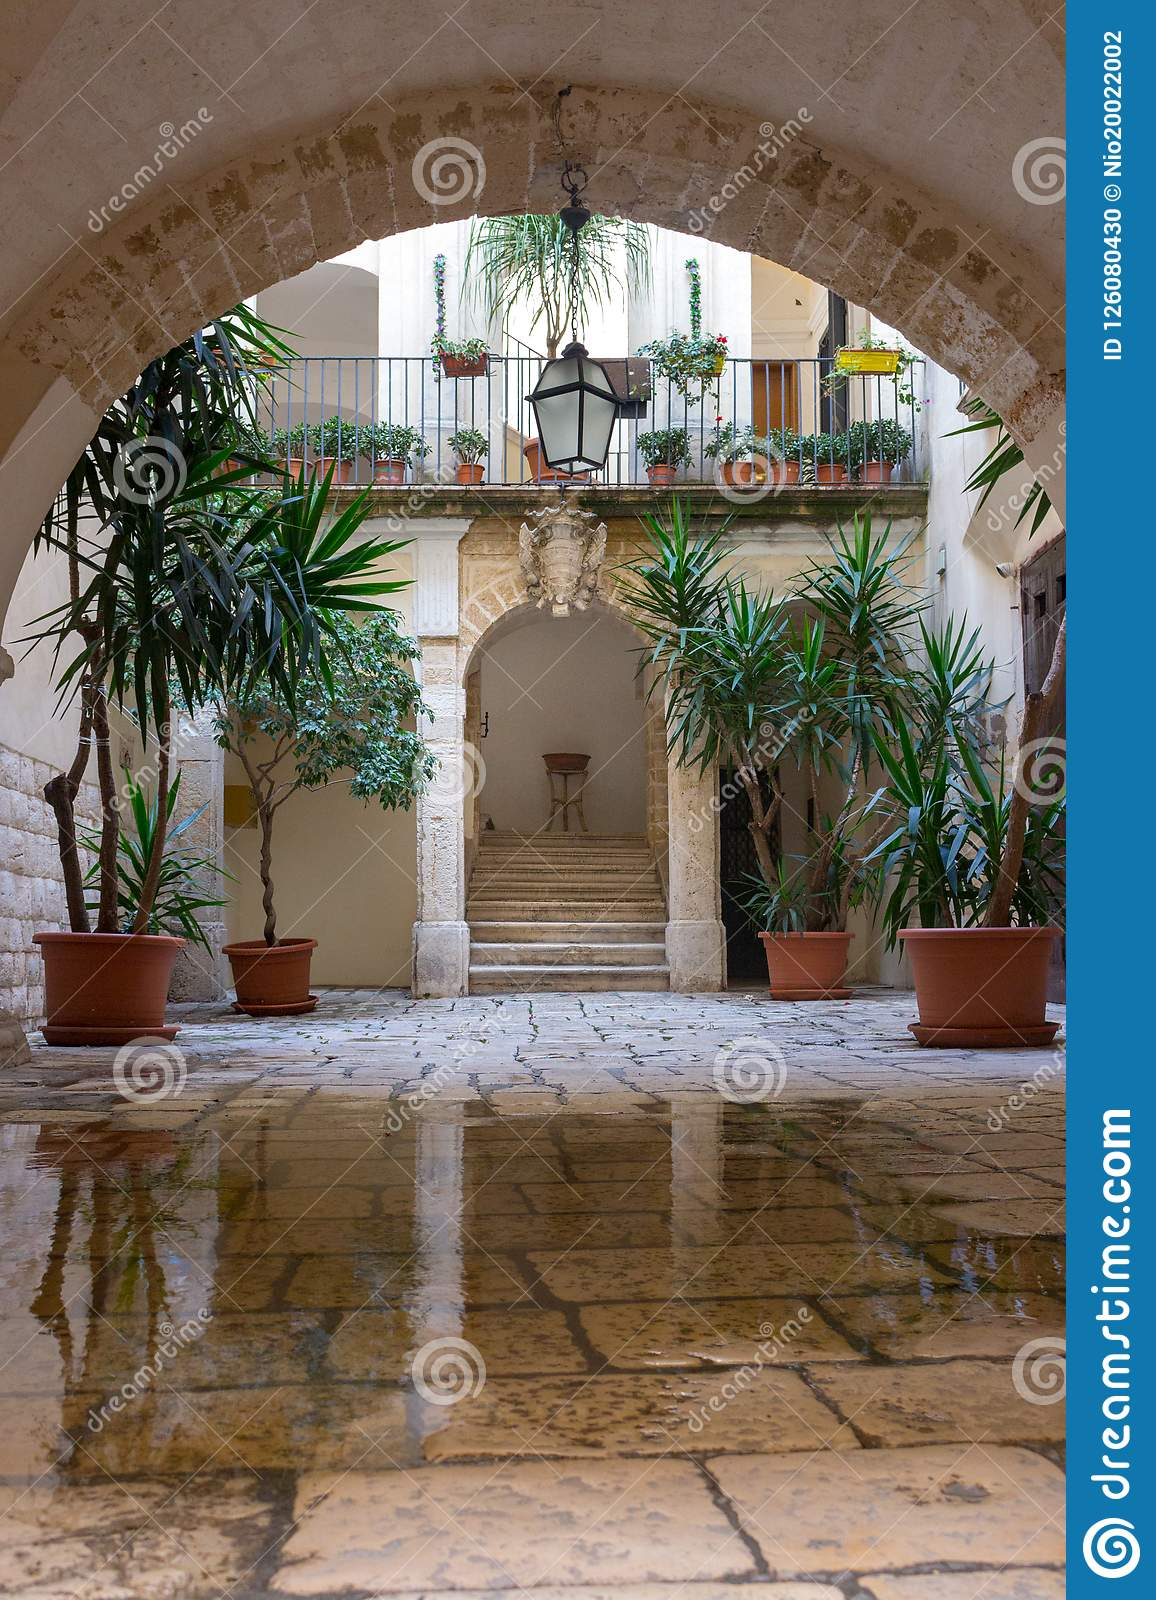 Download Backyard With Arch, Plants In Pots, Stairs, Puddle And Lantern.  Patio